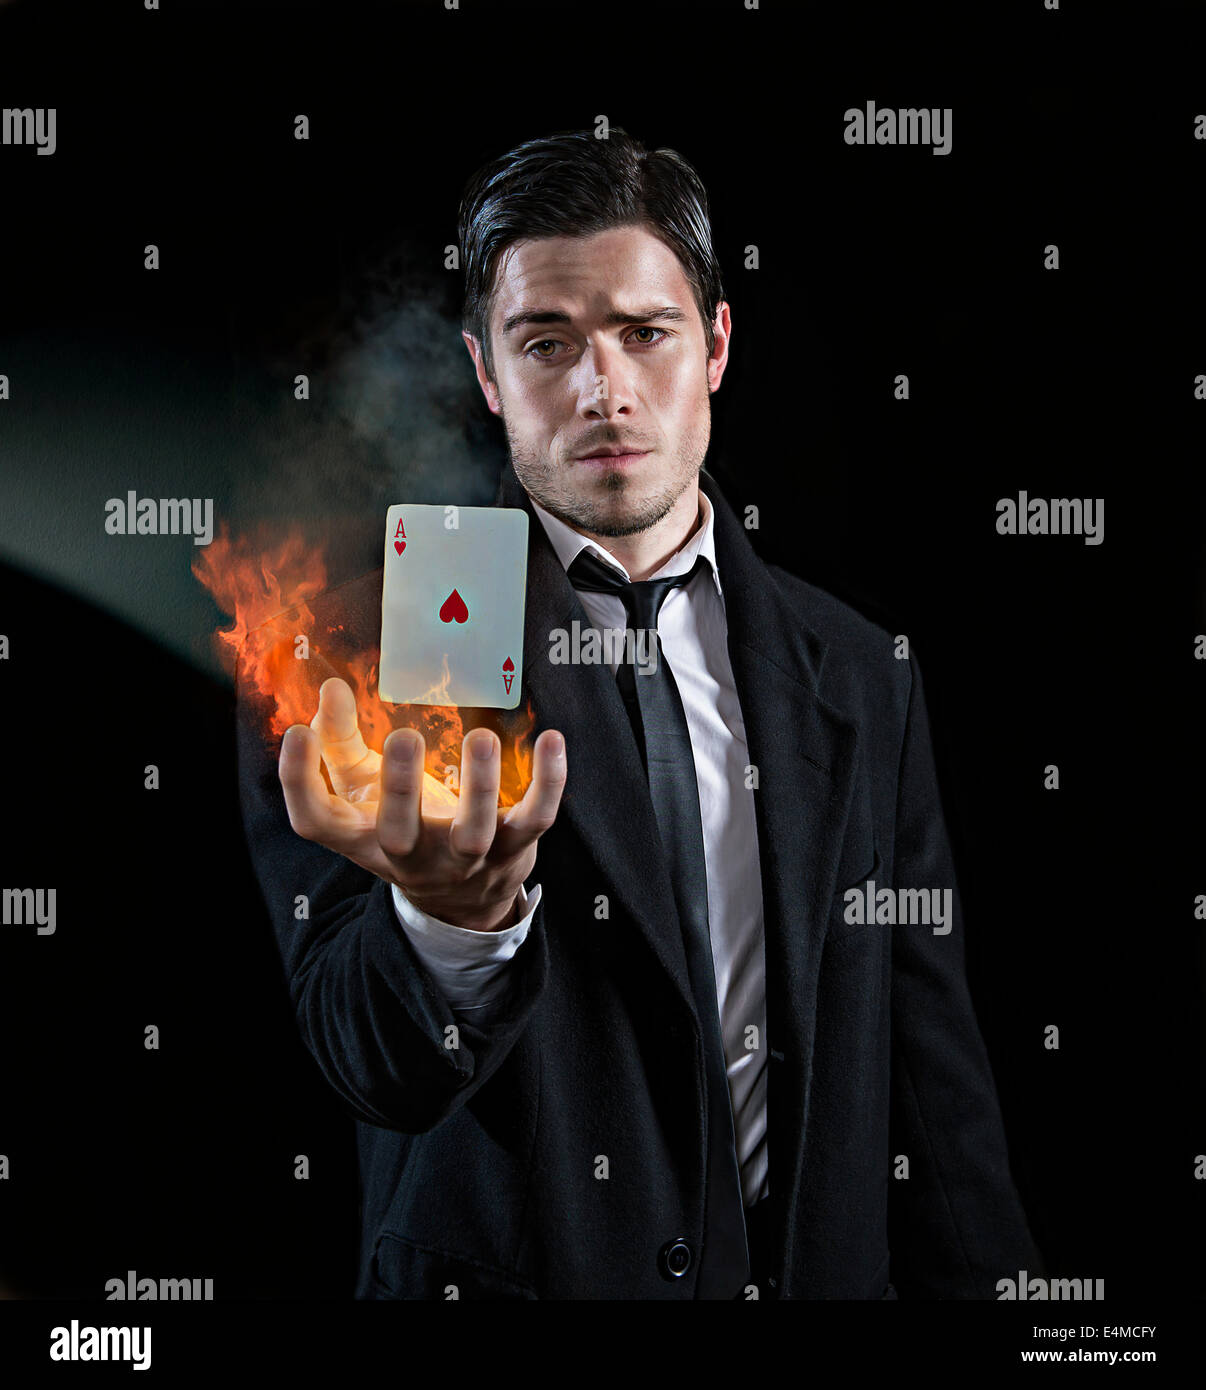 Magician produces an ace in flames - Stock Image